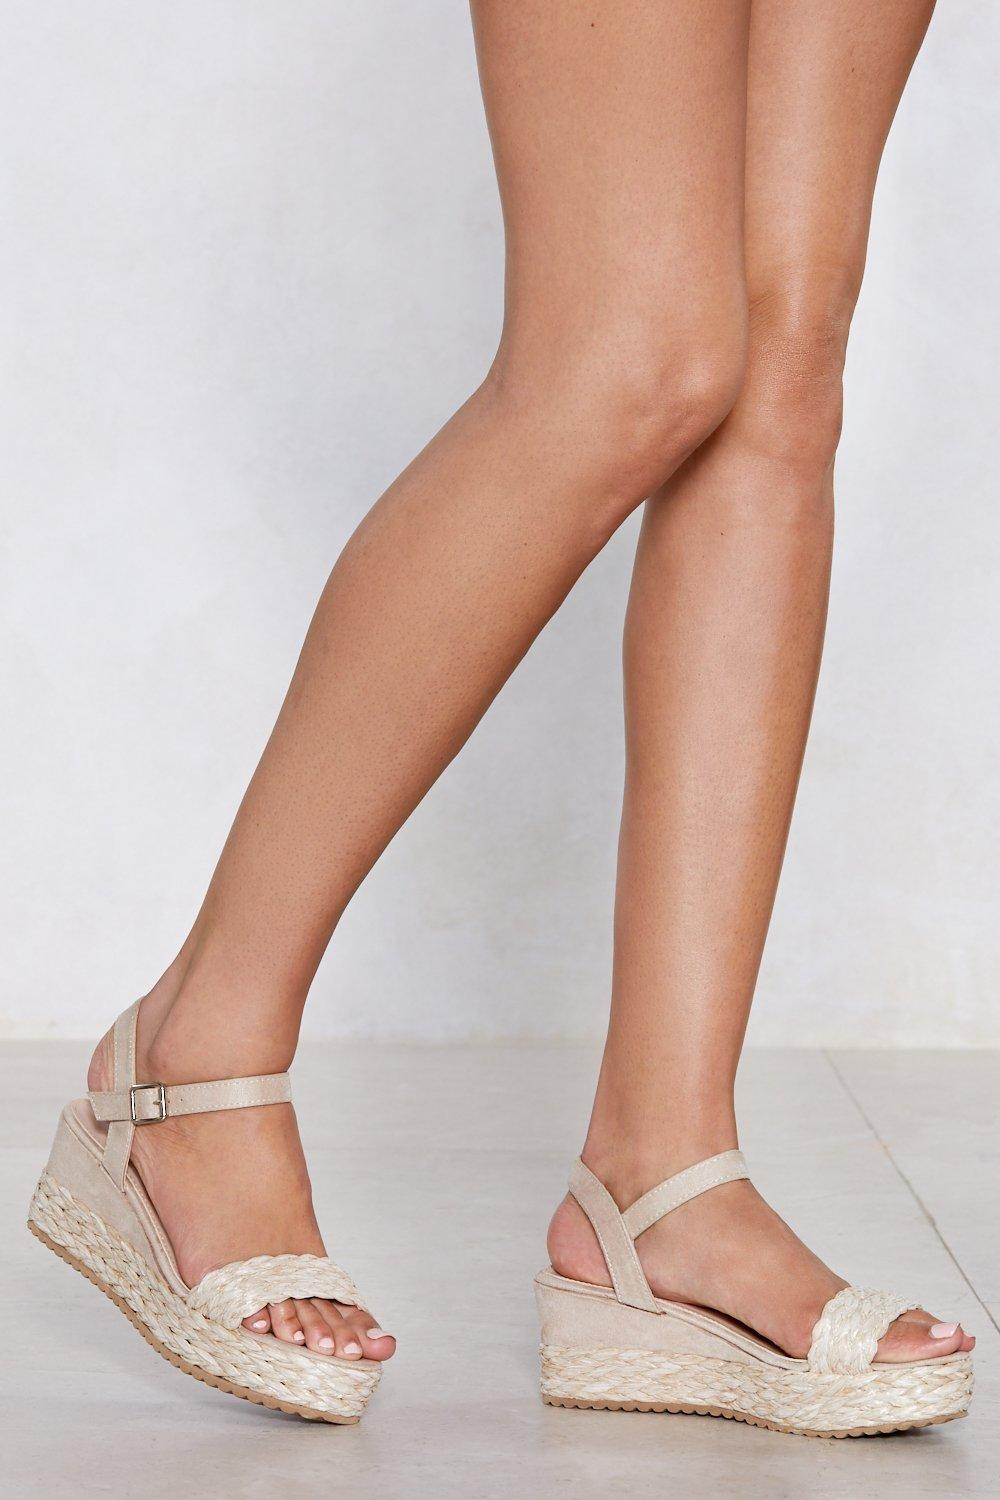 The Emotions are Straw Wedge Sandal | Nasty Gal